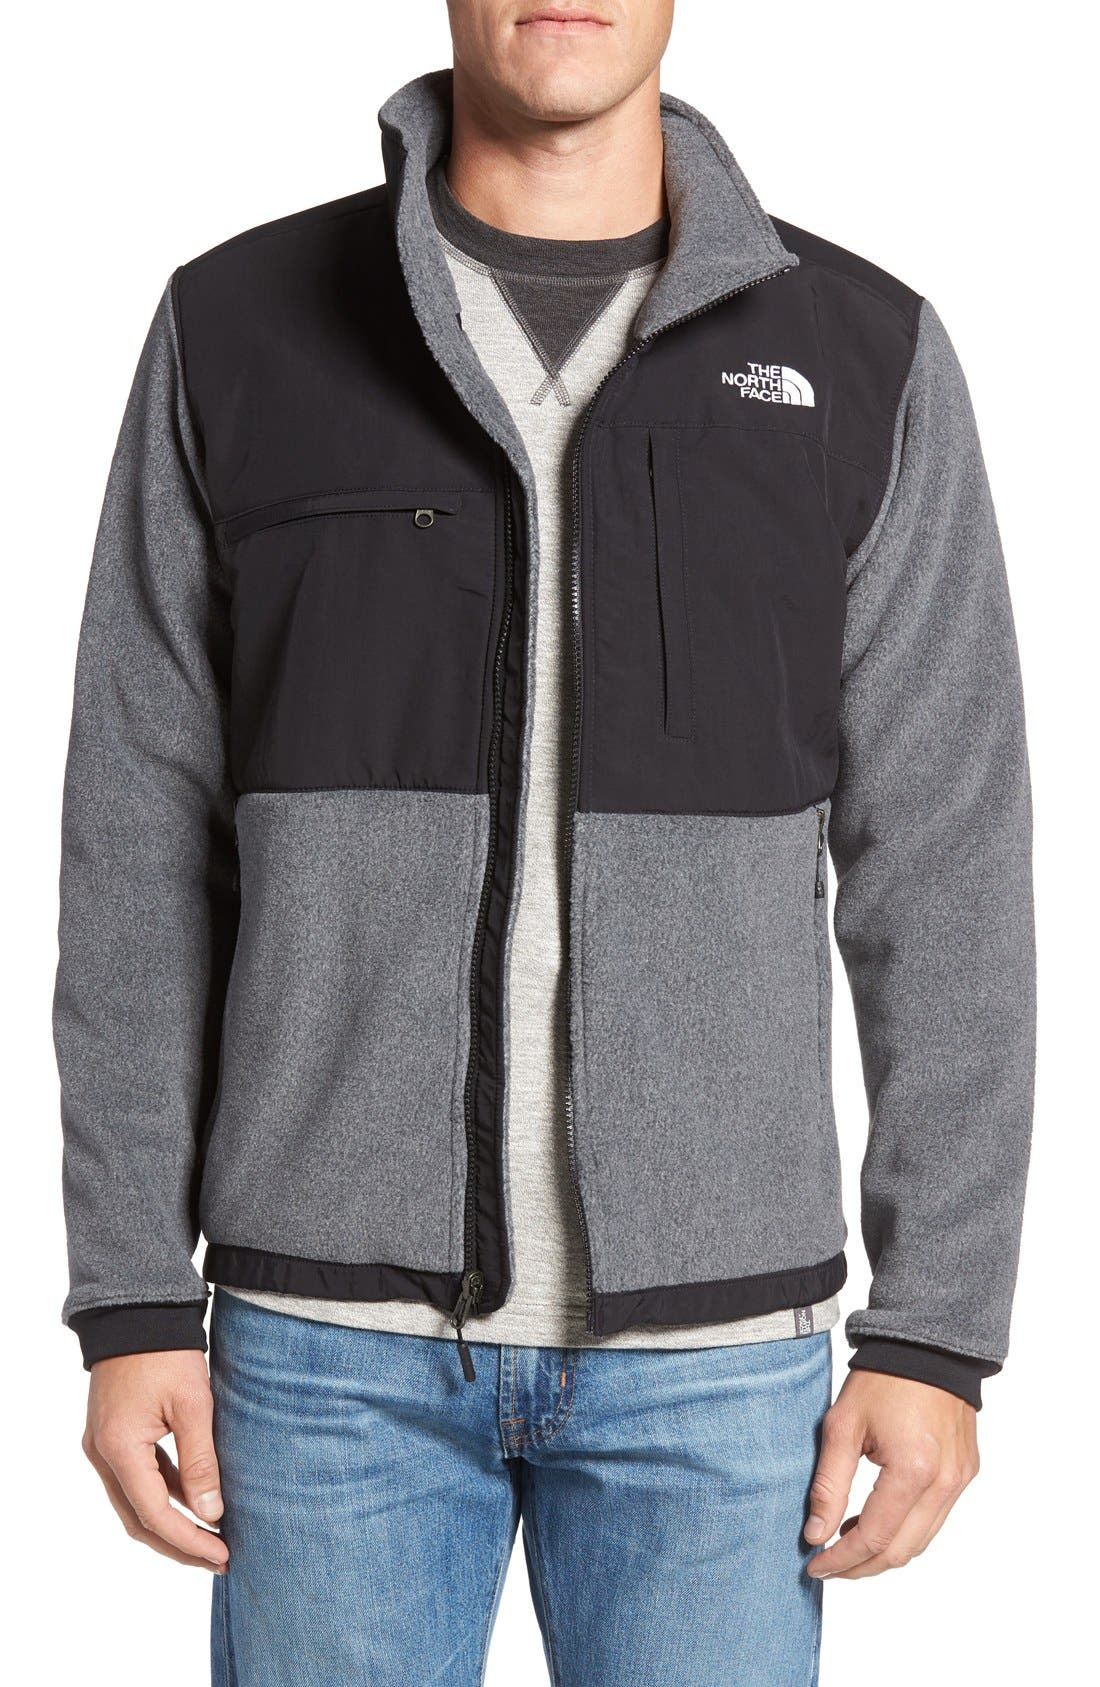 Denali 2 Recycled Fleece Jacket,                         Main,                         color, Charcoal Grey Heather/ Black